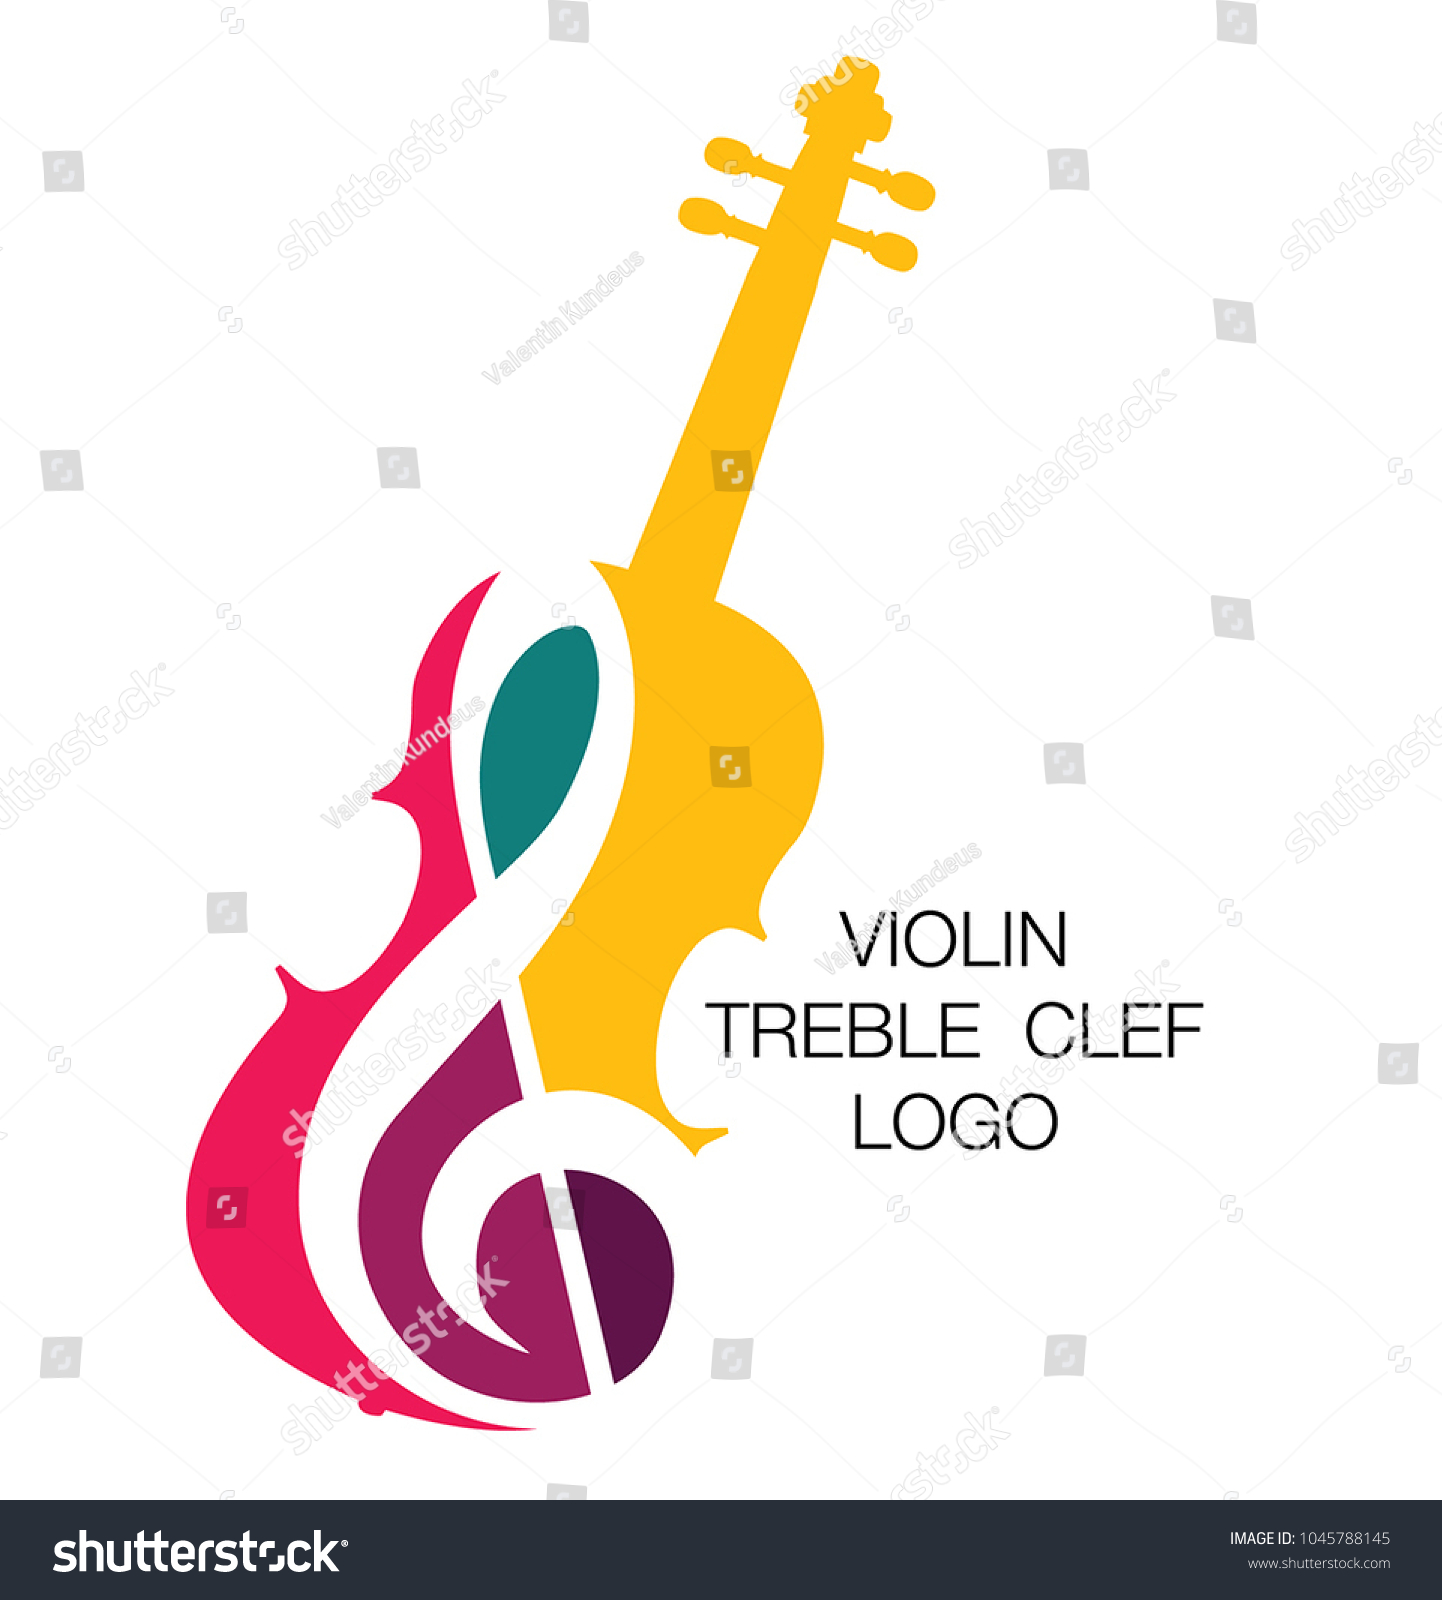 Musical logo. Silhouette of a violin and a treble clef. Bright juicy colors. The concept of classical music.